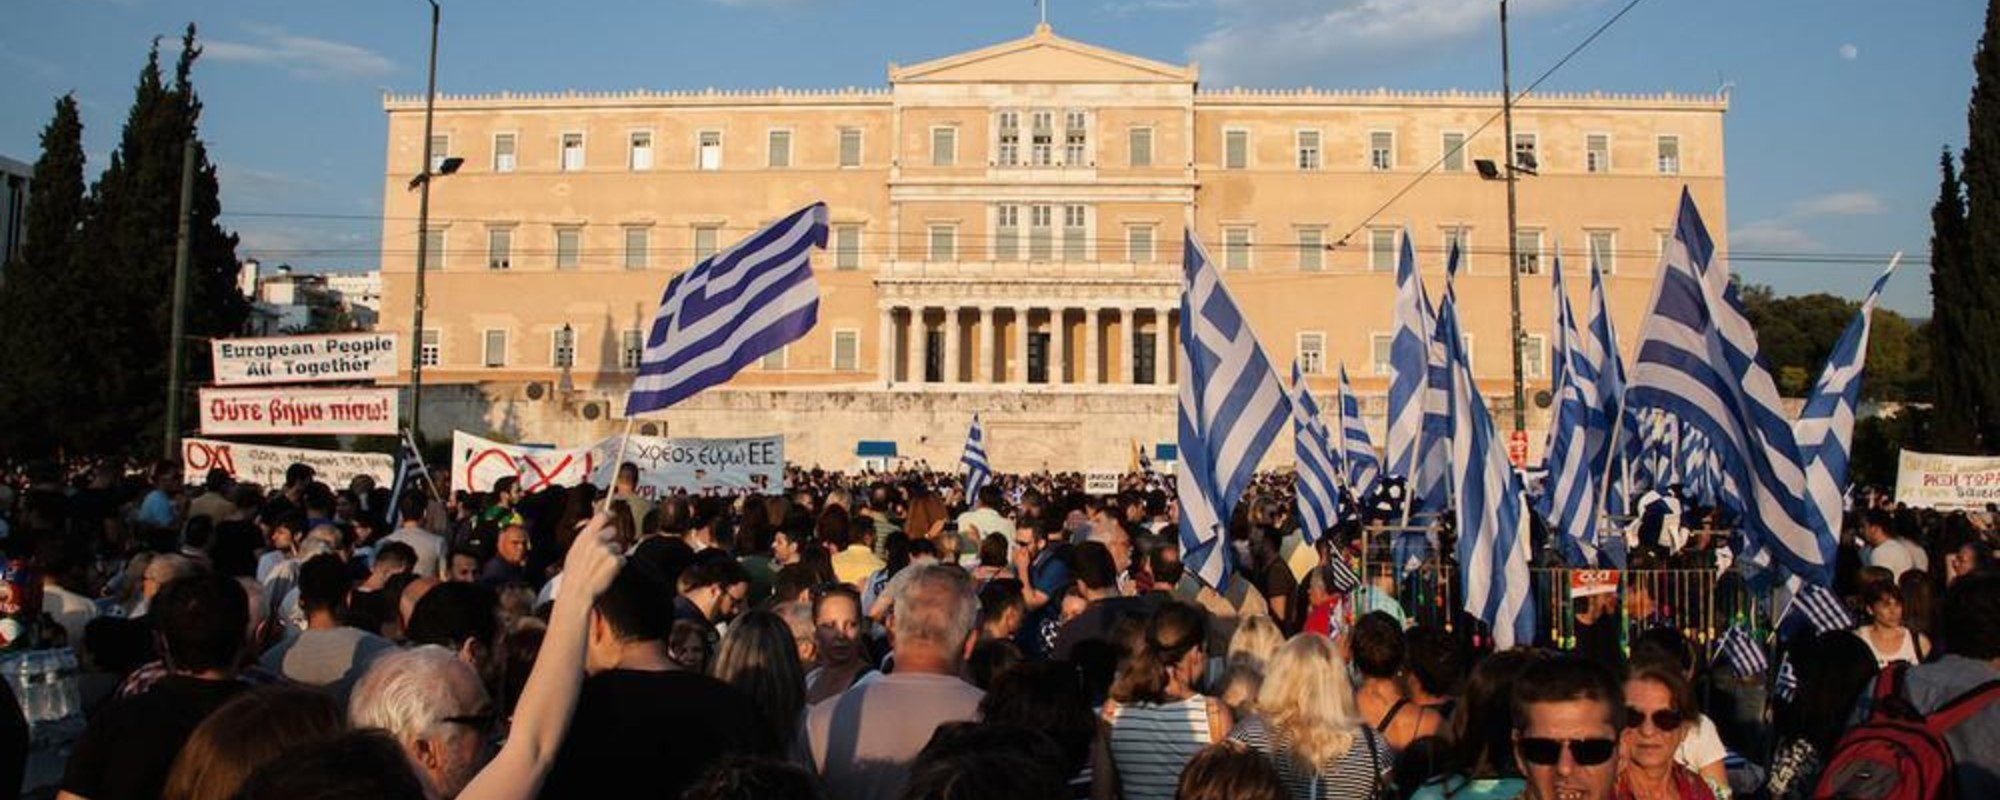 Greeks Took to the Streets of Athens to Say 'No' to the EU Bailout Plan Last Night